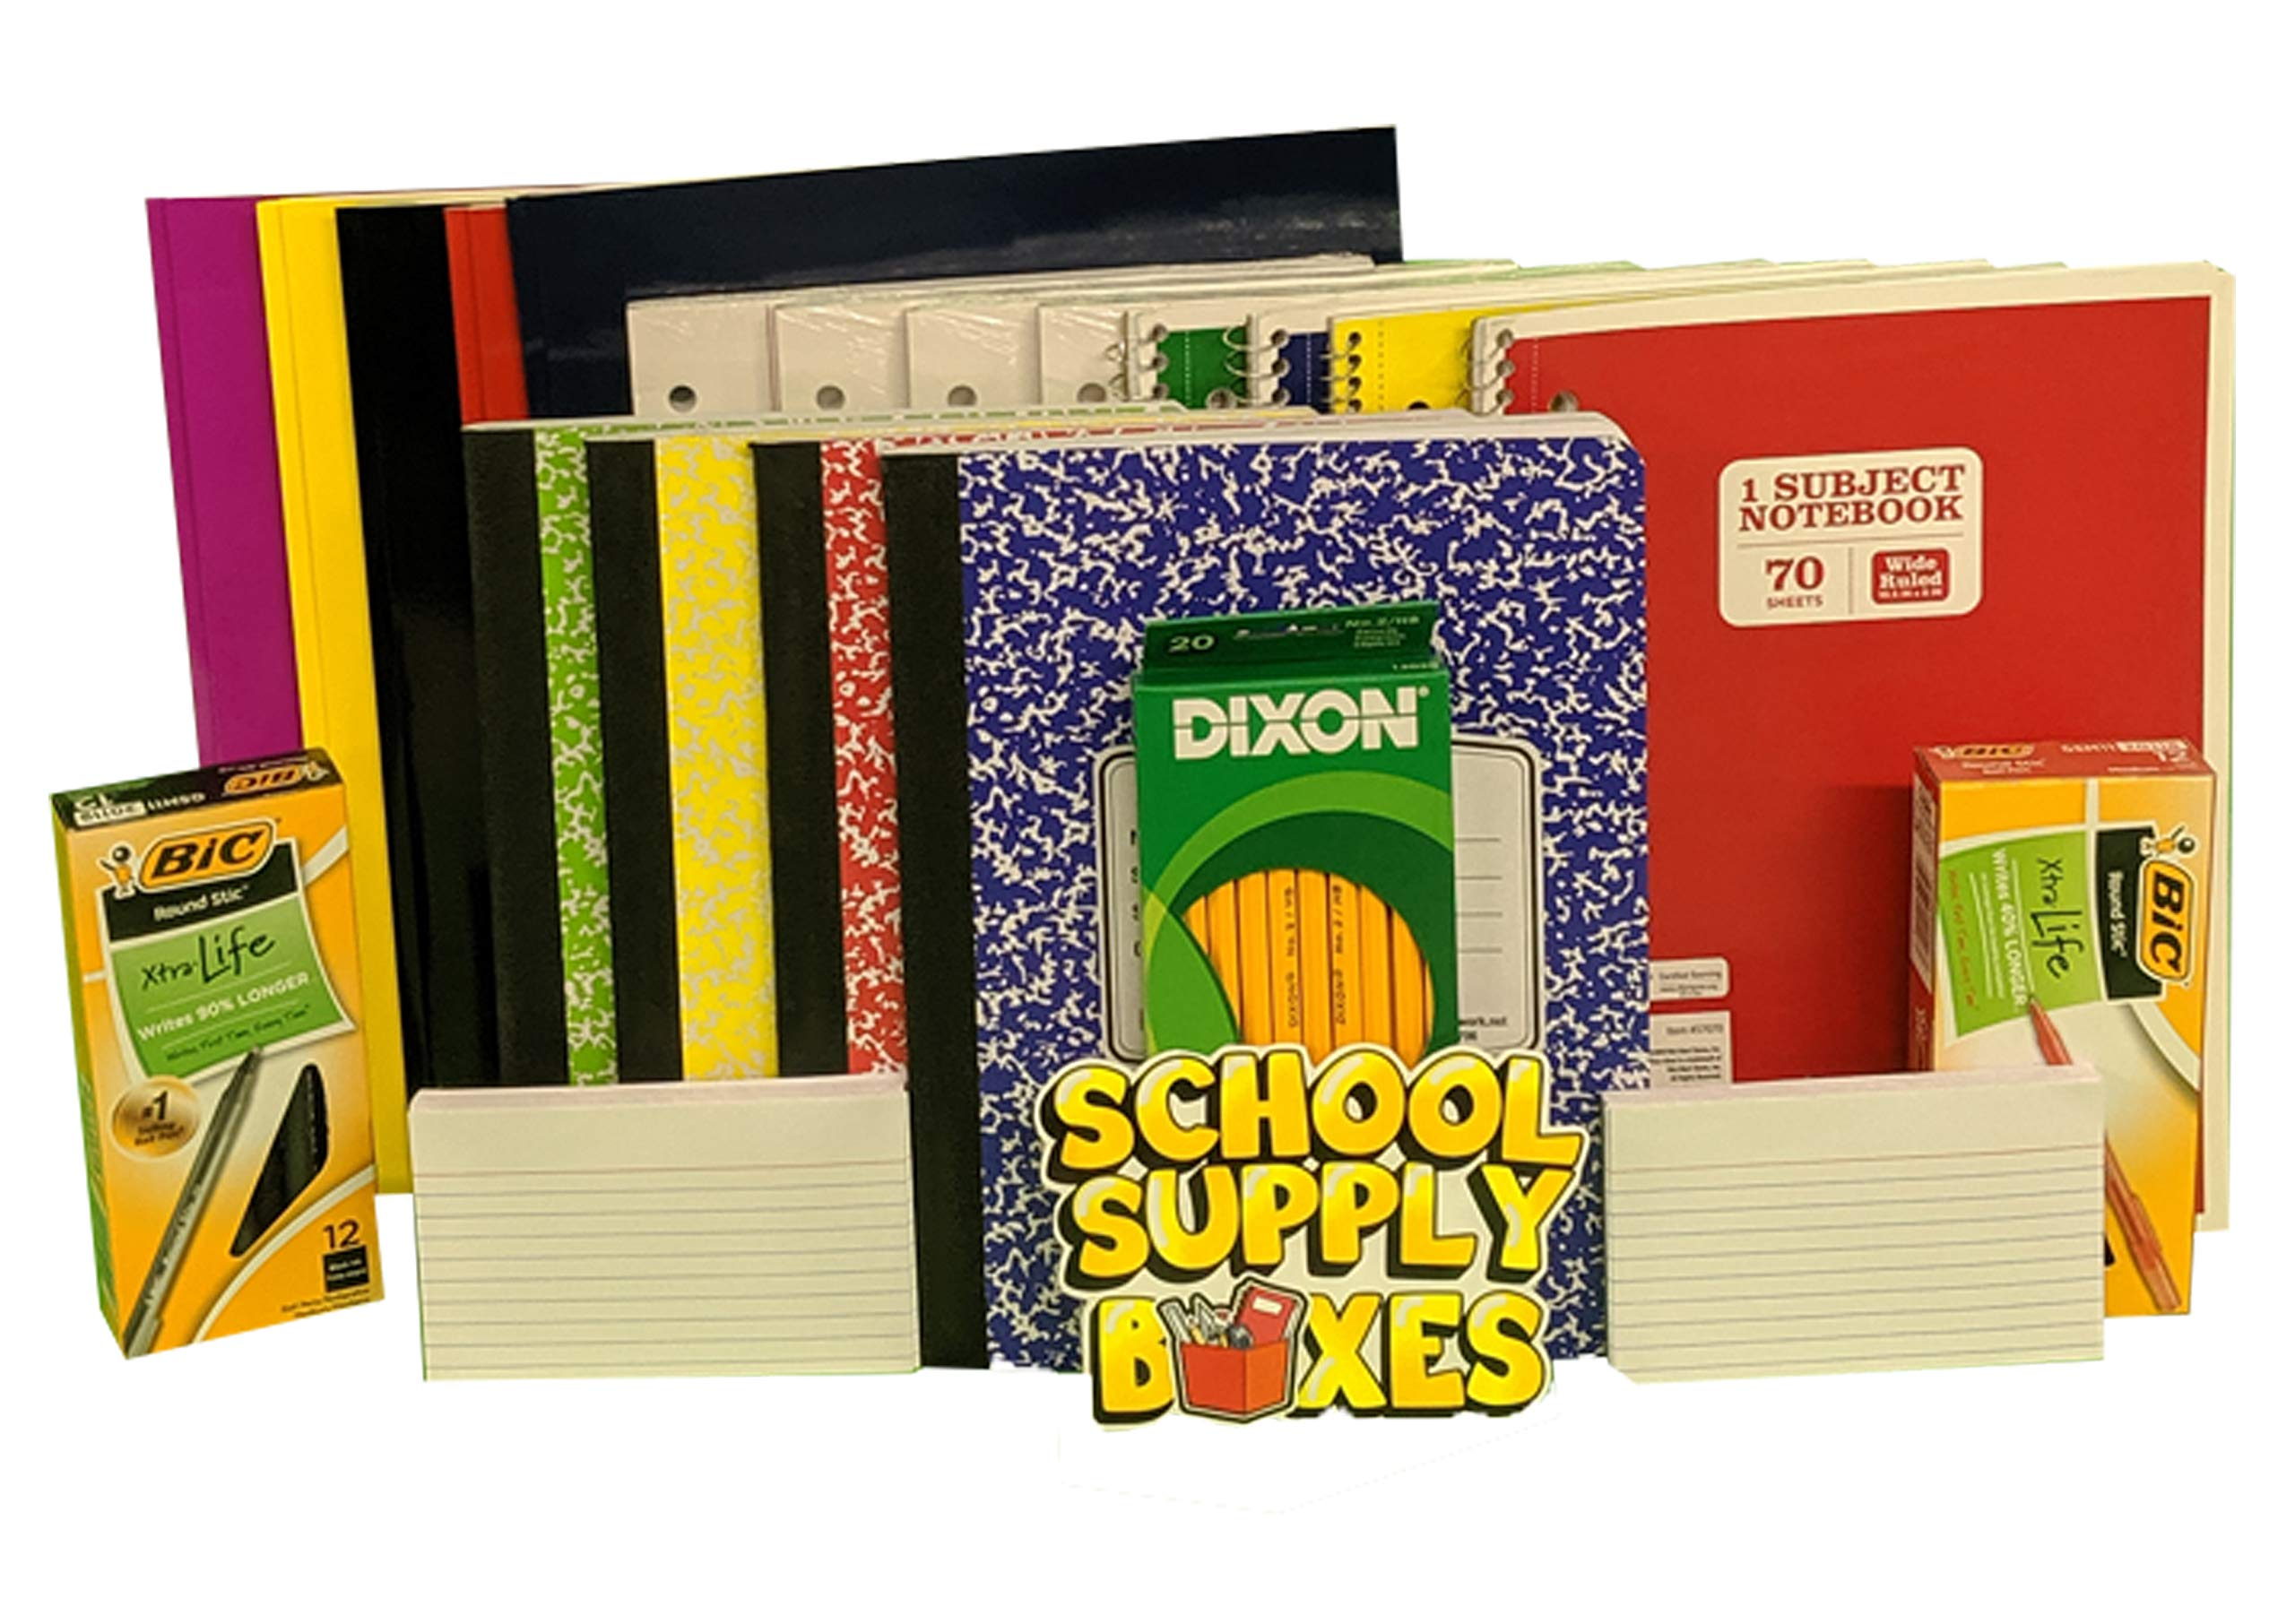 Elementary Writing Bundle - Back to School Essentials for Elementary Students - Includes Folders, Notebooks, Composition Notebooks, Filler Paper, Index Cards, #2 Pencils, Black Pens, and Red Pens